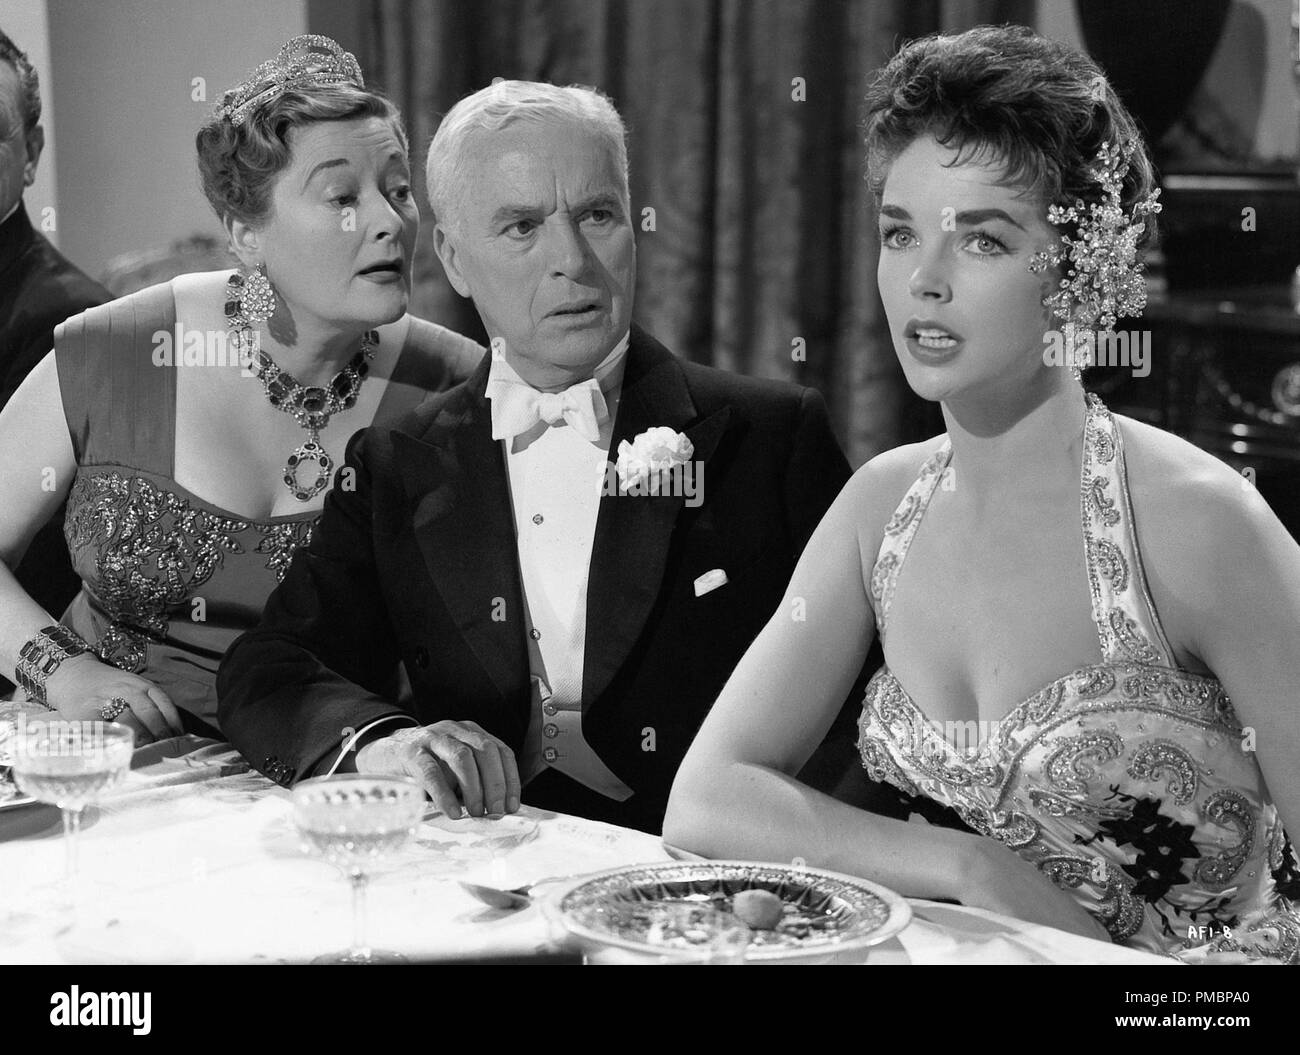 Charles Chaplin in 'A King in New York' 1957 Archway Ent. File Reference # 32603_349THA - Stock Image